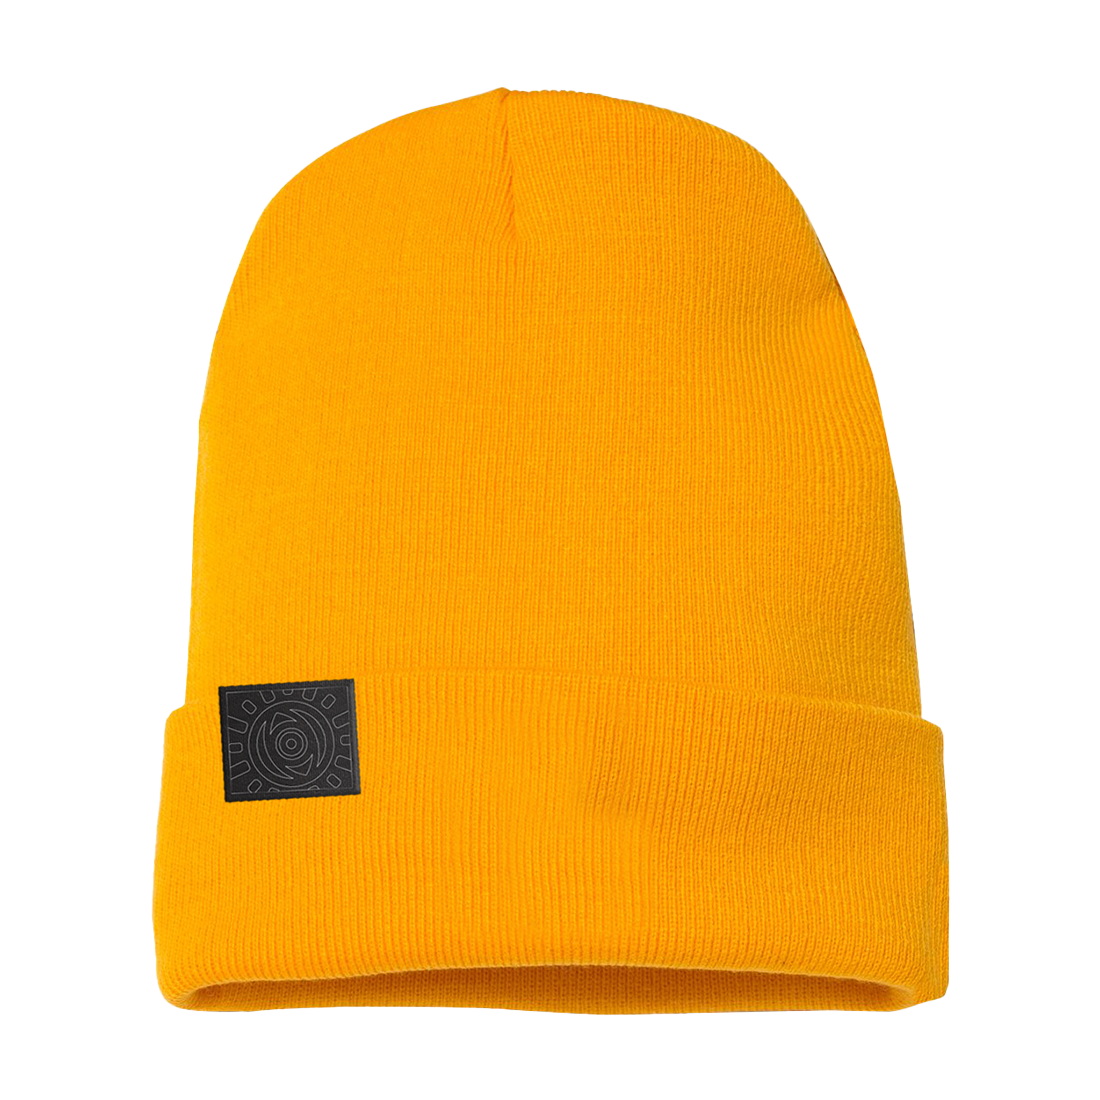 OUTLINE SUNSHINE GOLD BEANIE